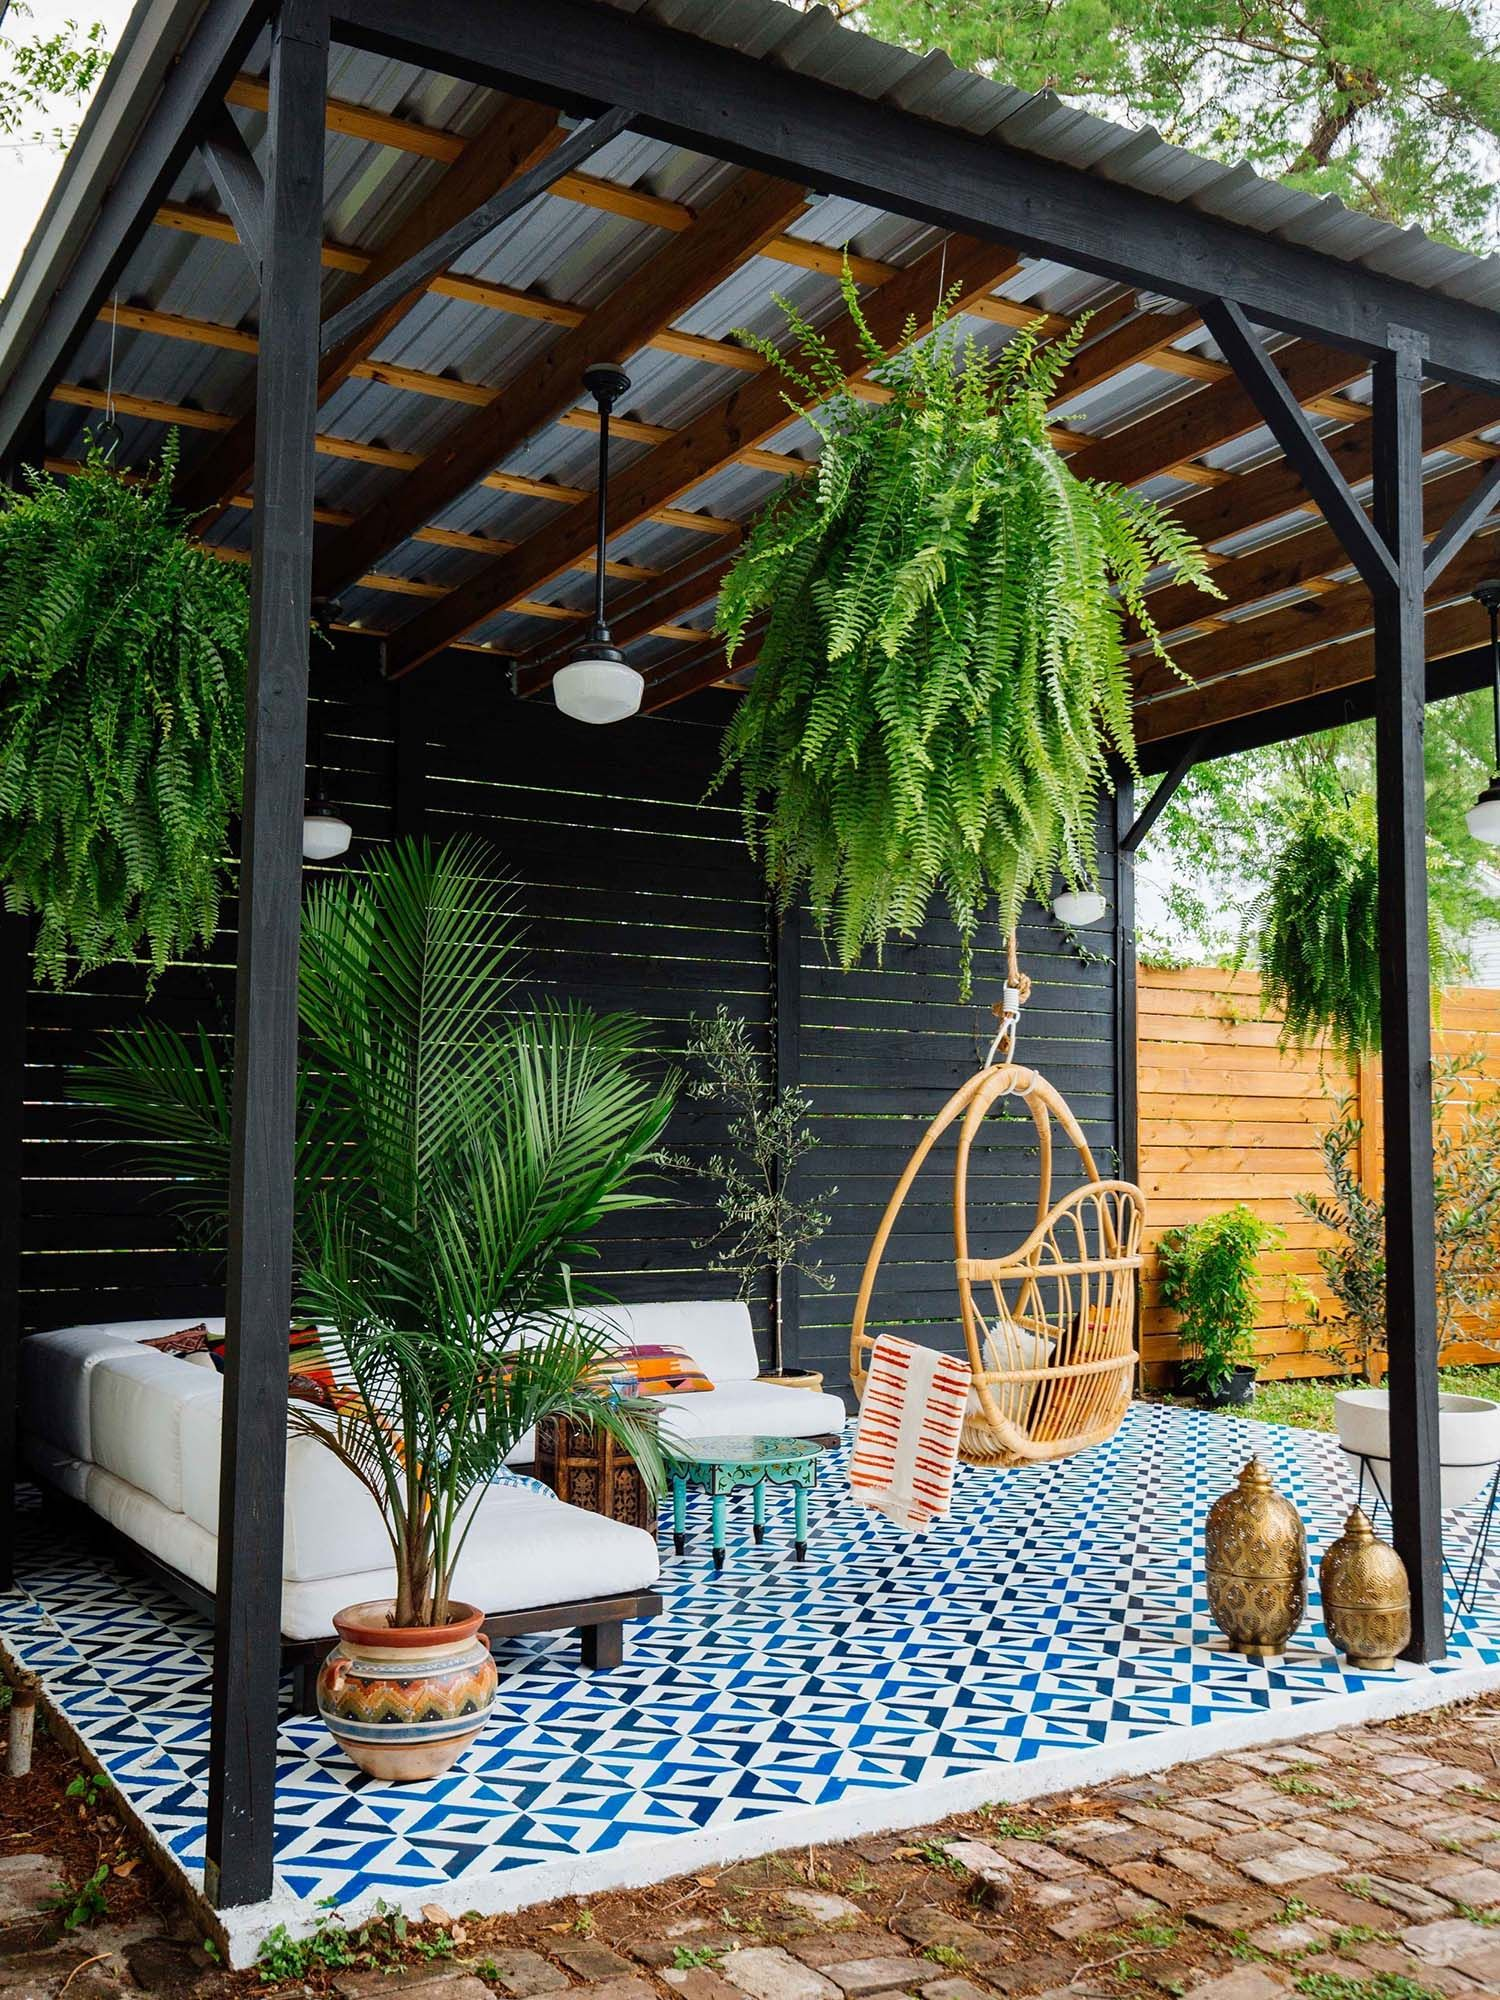 35 brilliant and inspiring patio ideas for outdoor living on modern deck patio ideas for backyard design and decoration ideas id=25553